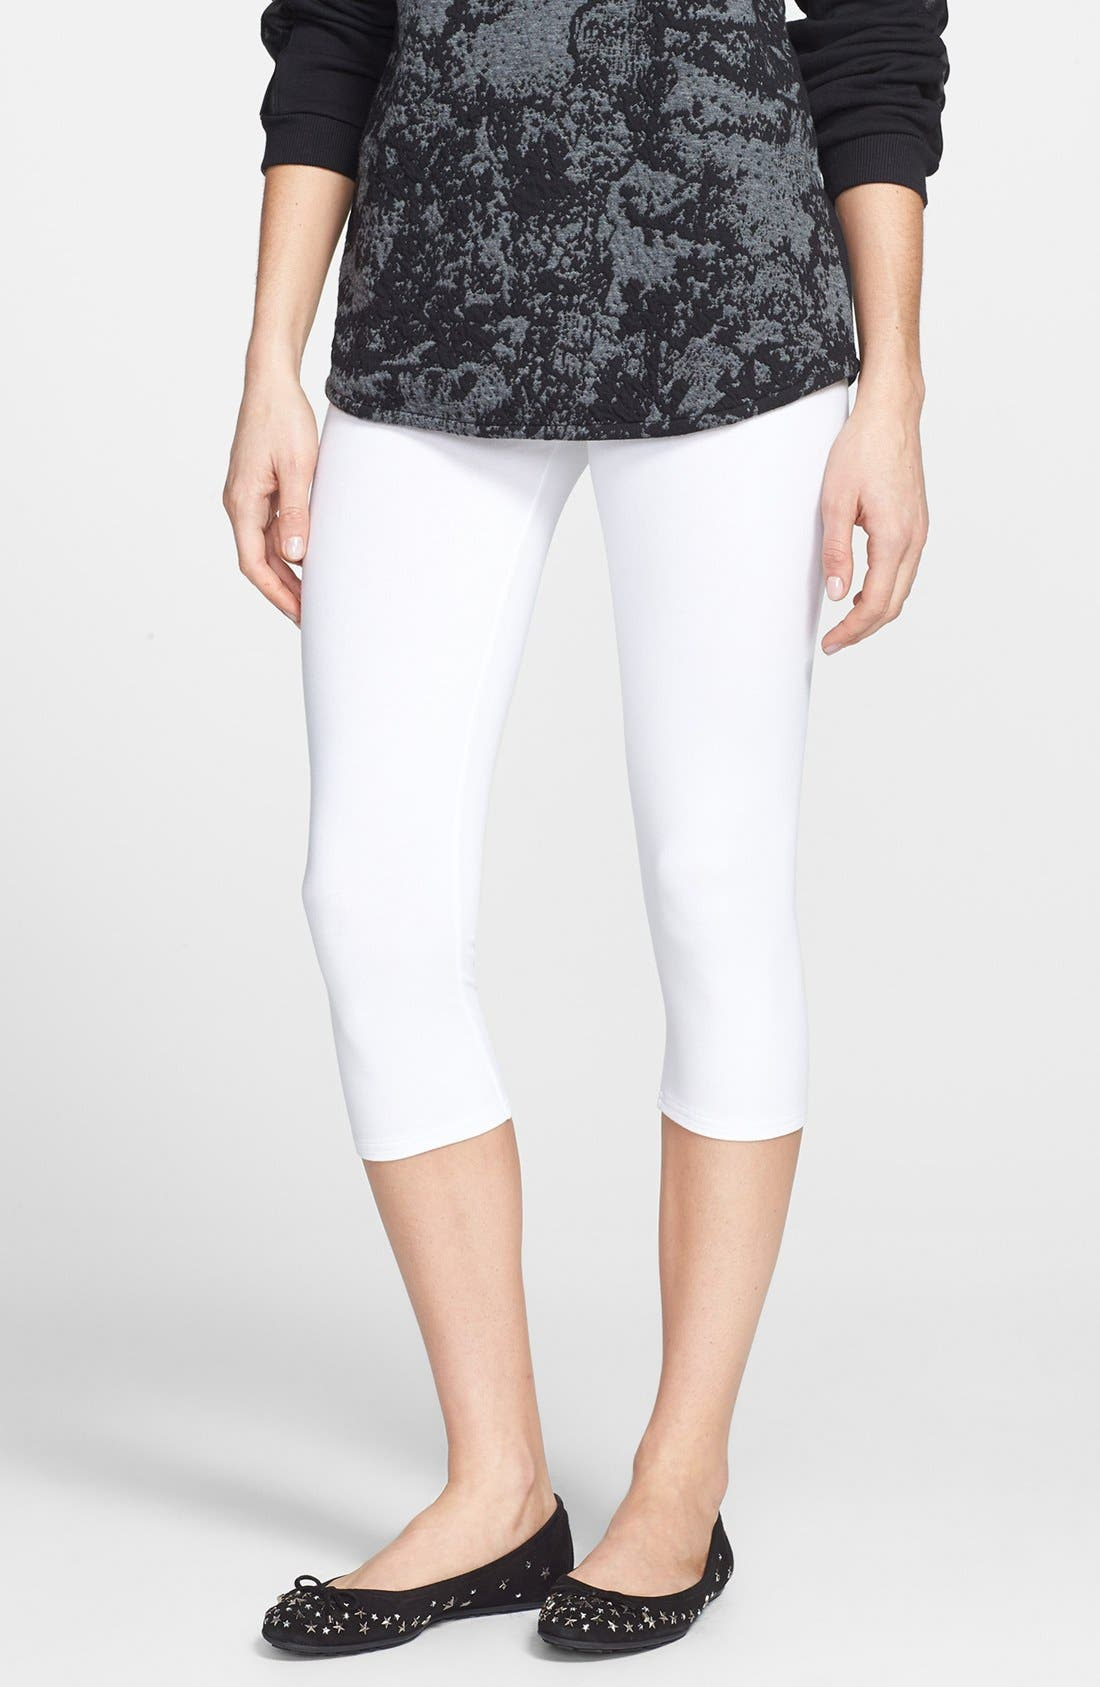 Alternate Image 1 Selected - Nordstrom 'Go To' Capri Leggings